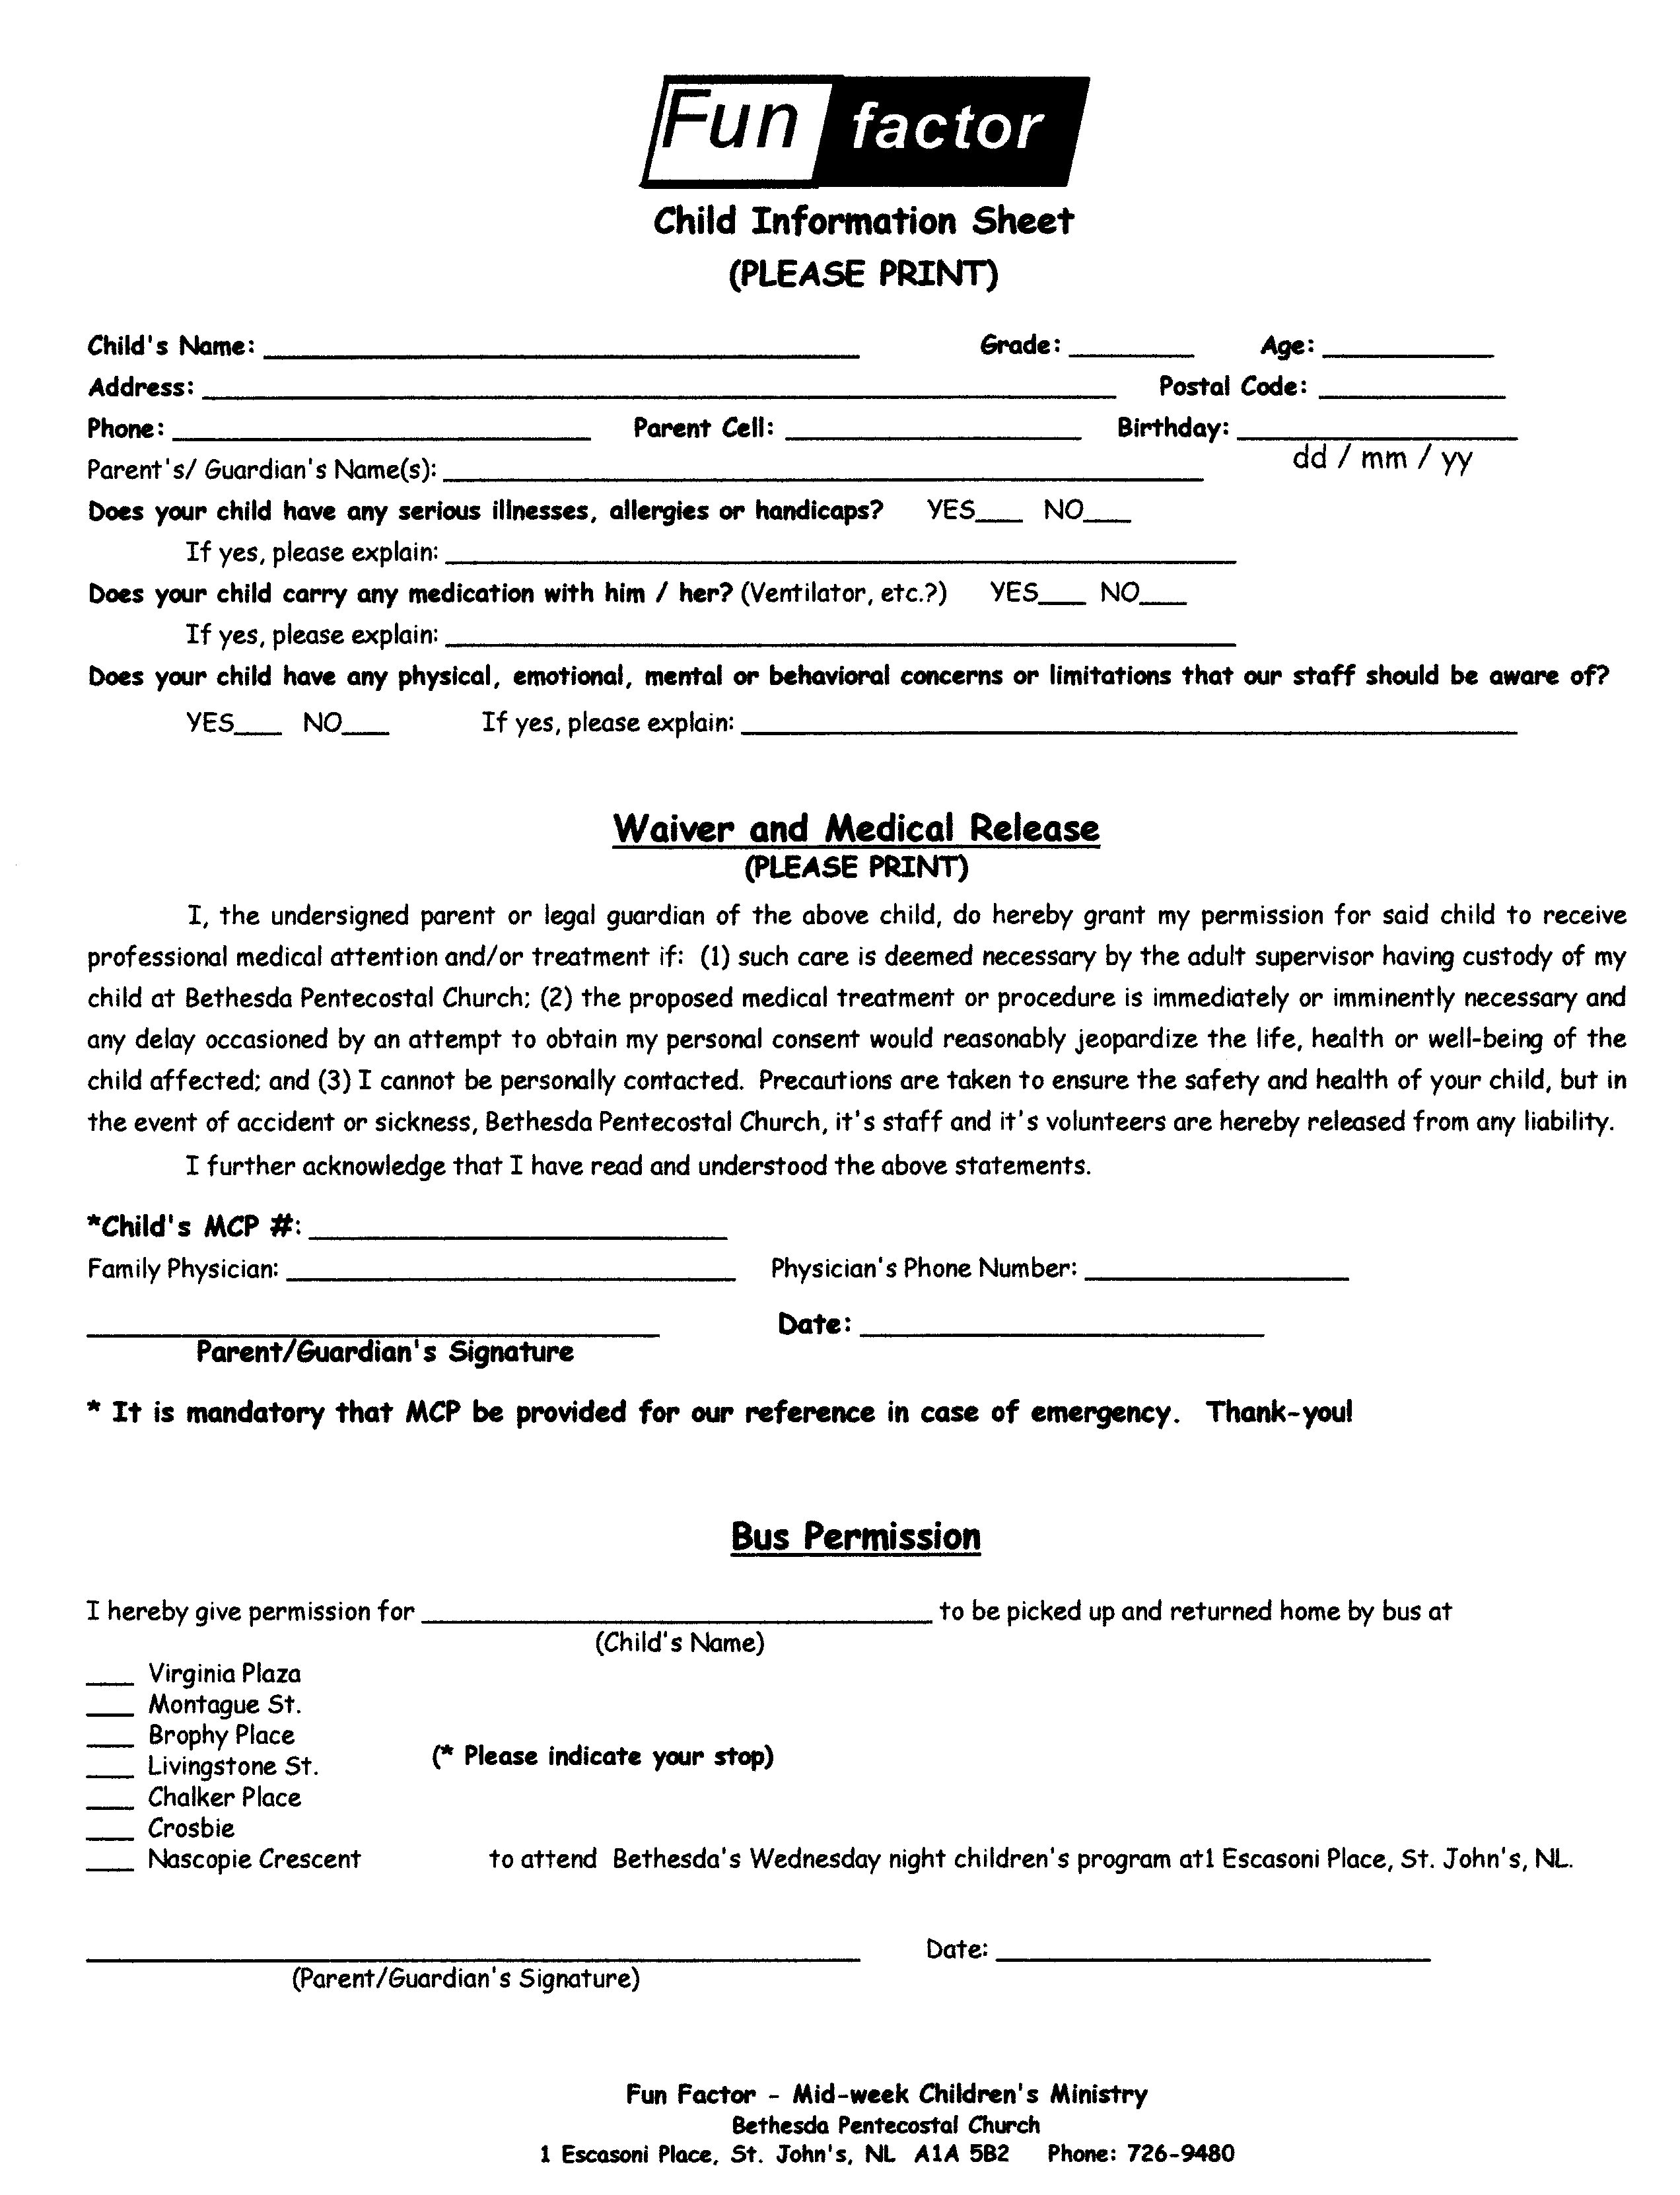 Forms For Kids To Fill Out Images